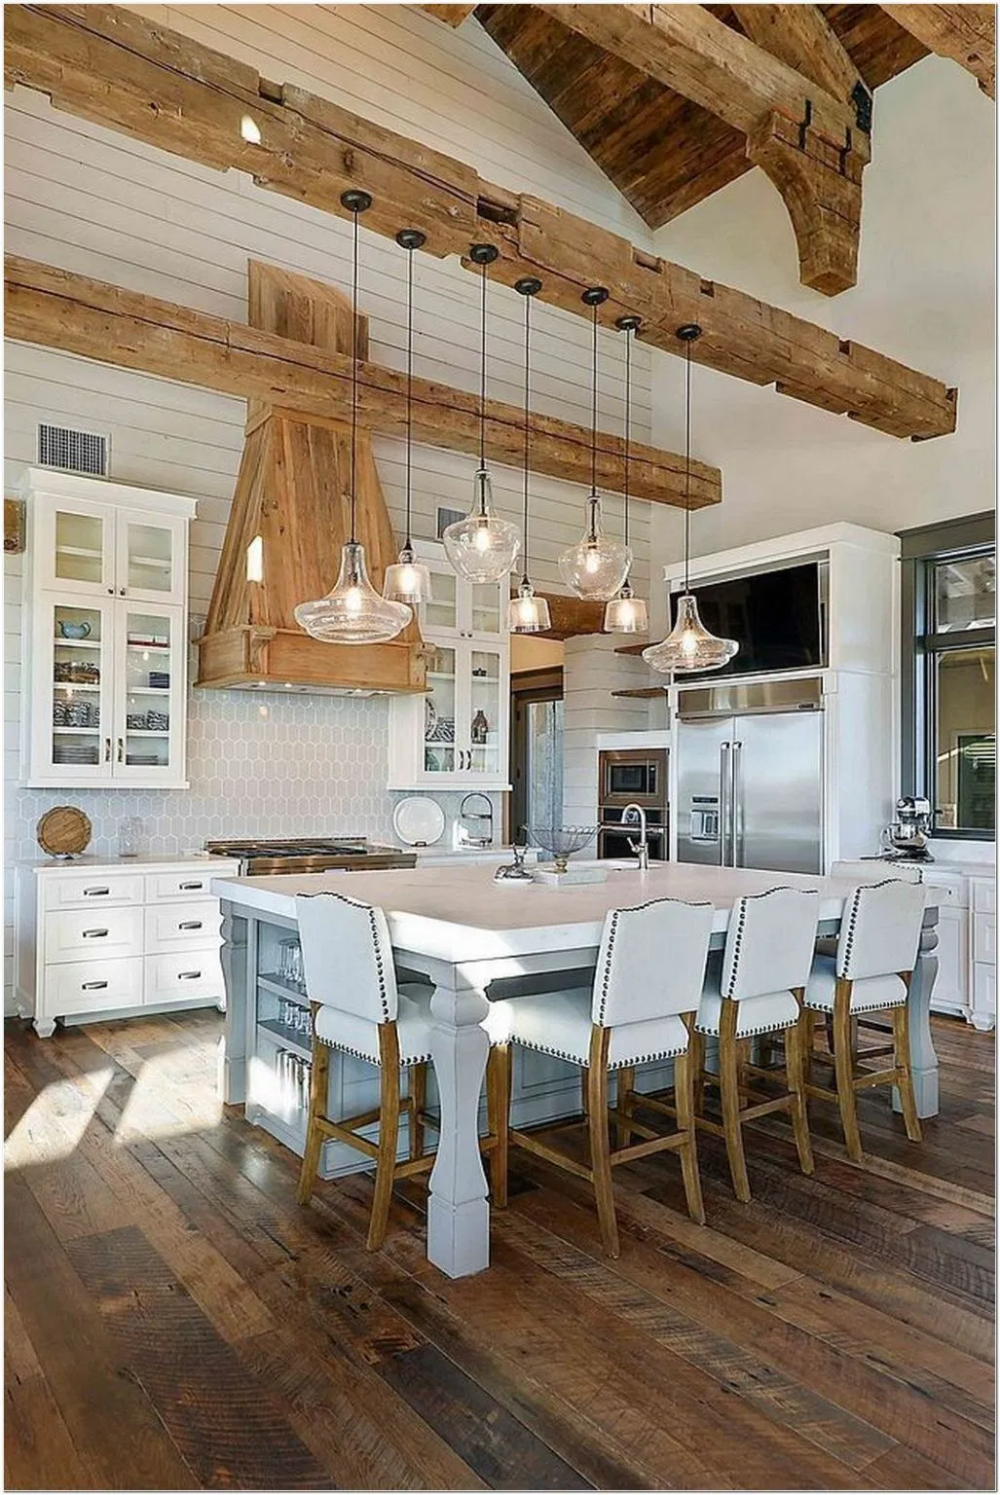 99 How To Create A Modern Farmhouse Kitchen 15 In 2020 Farmhouse Style House Interior Modern Farmhouse Kitchens Kitchen Interior